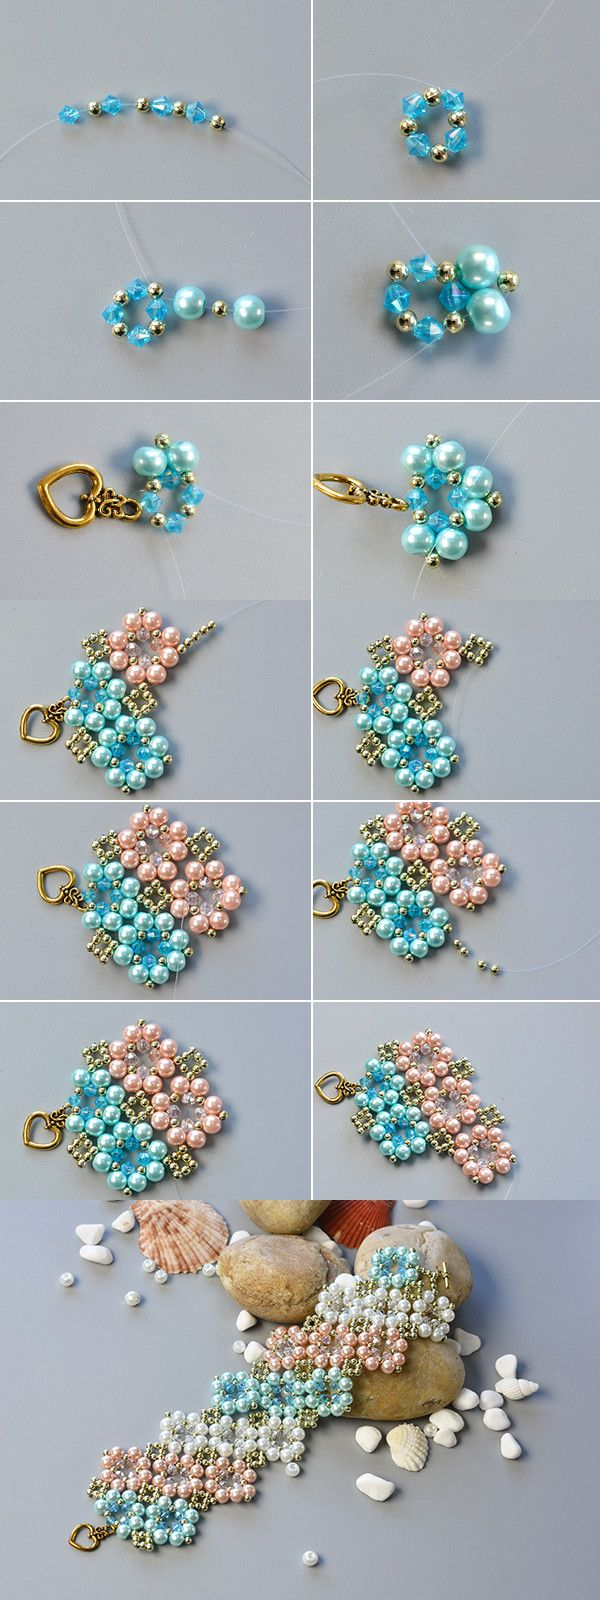 by hama s pin flower pattern pinterest de wreaths kolossaltpyssligt beads